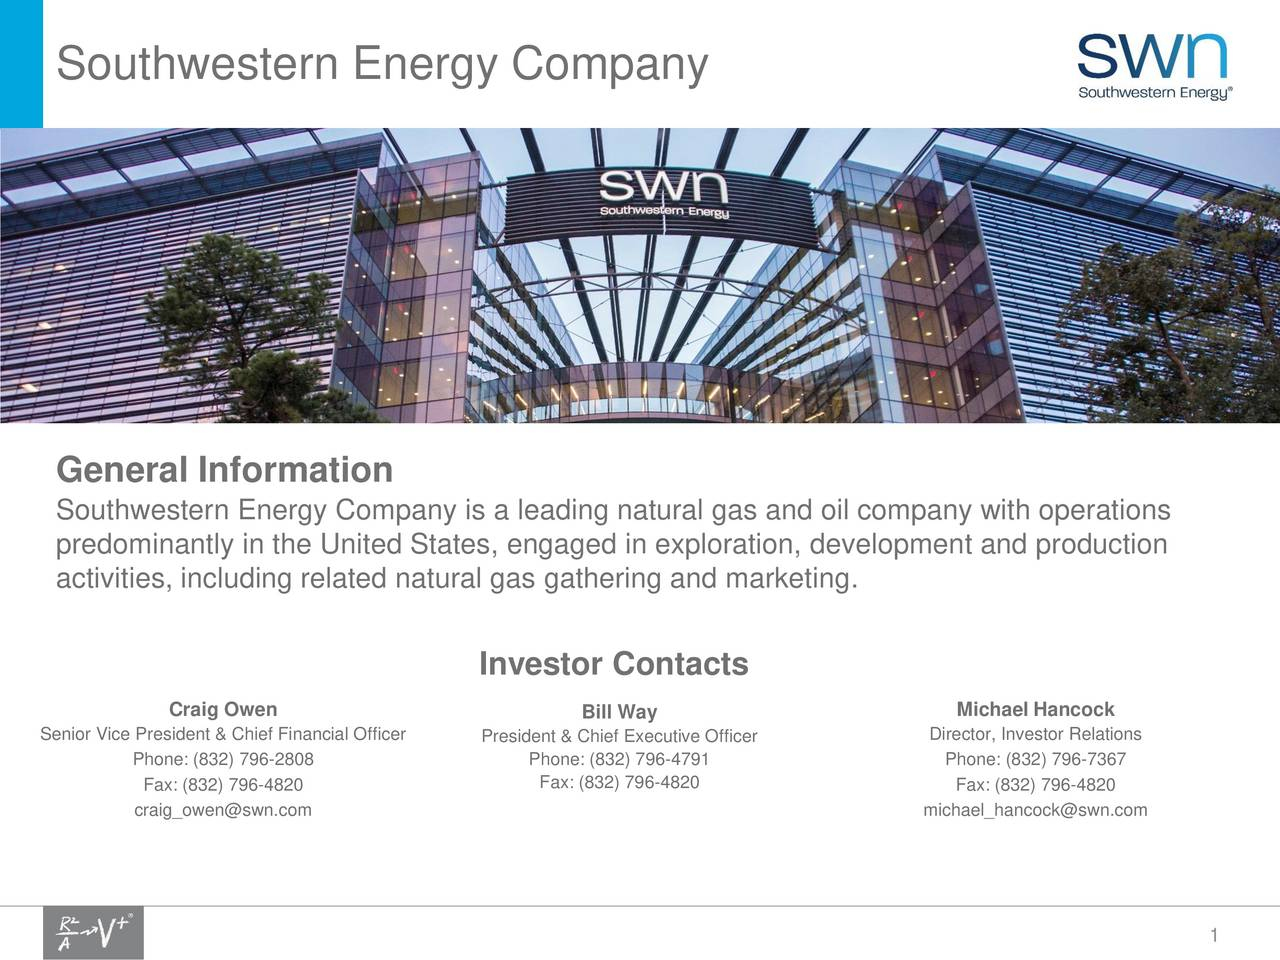 General Information is a leading natural gas and oil company with operations predominantly in the United States, engaged in exploration, development and production activities, including related natural gas gathering and marketing. Investor Contacts Craig Owen Bill Way Michael Hancock Senior Vice President & Chief Financial OfPresident & Chief Executive Officer Director, Investor Relations Phone: (832) 796-2808 Phone: (832) 796-4791 Phone: (832) 796-7367 Fax: (832) 796-4820 Fax: (832) 796-4820 Fax: (832) 796-4820 craig_owen@swn.com michael_hancock@swn.com 1